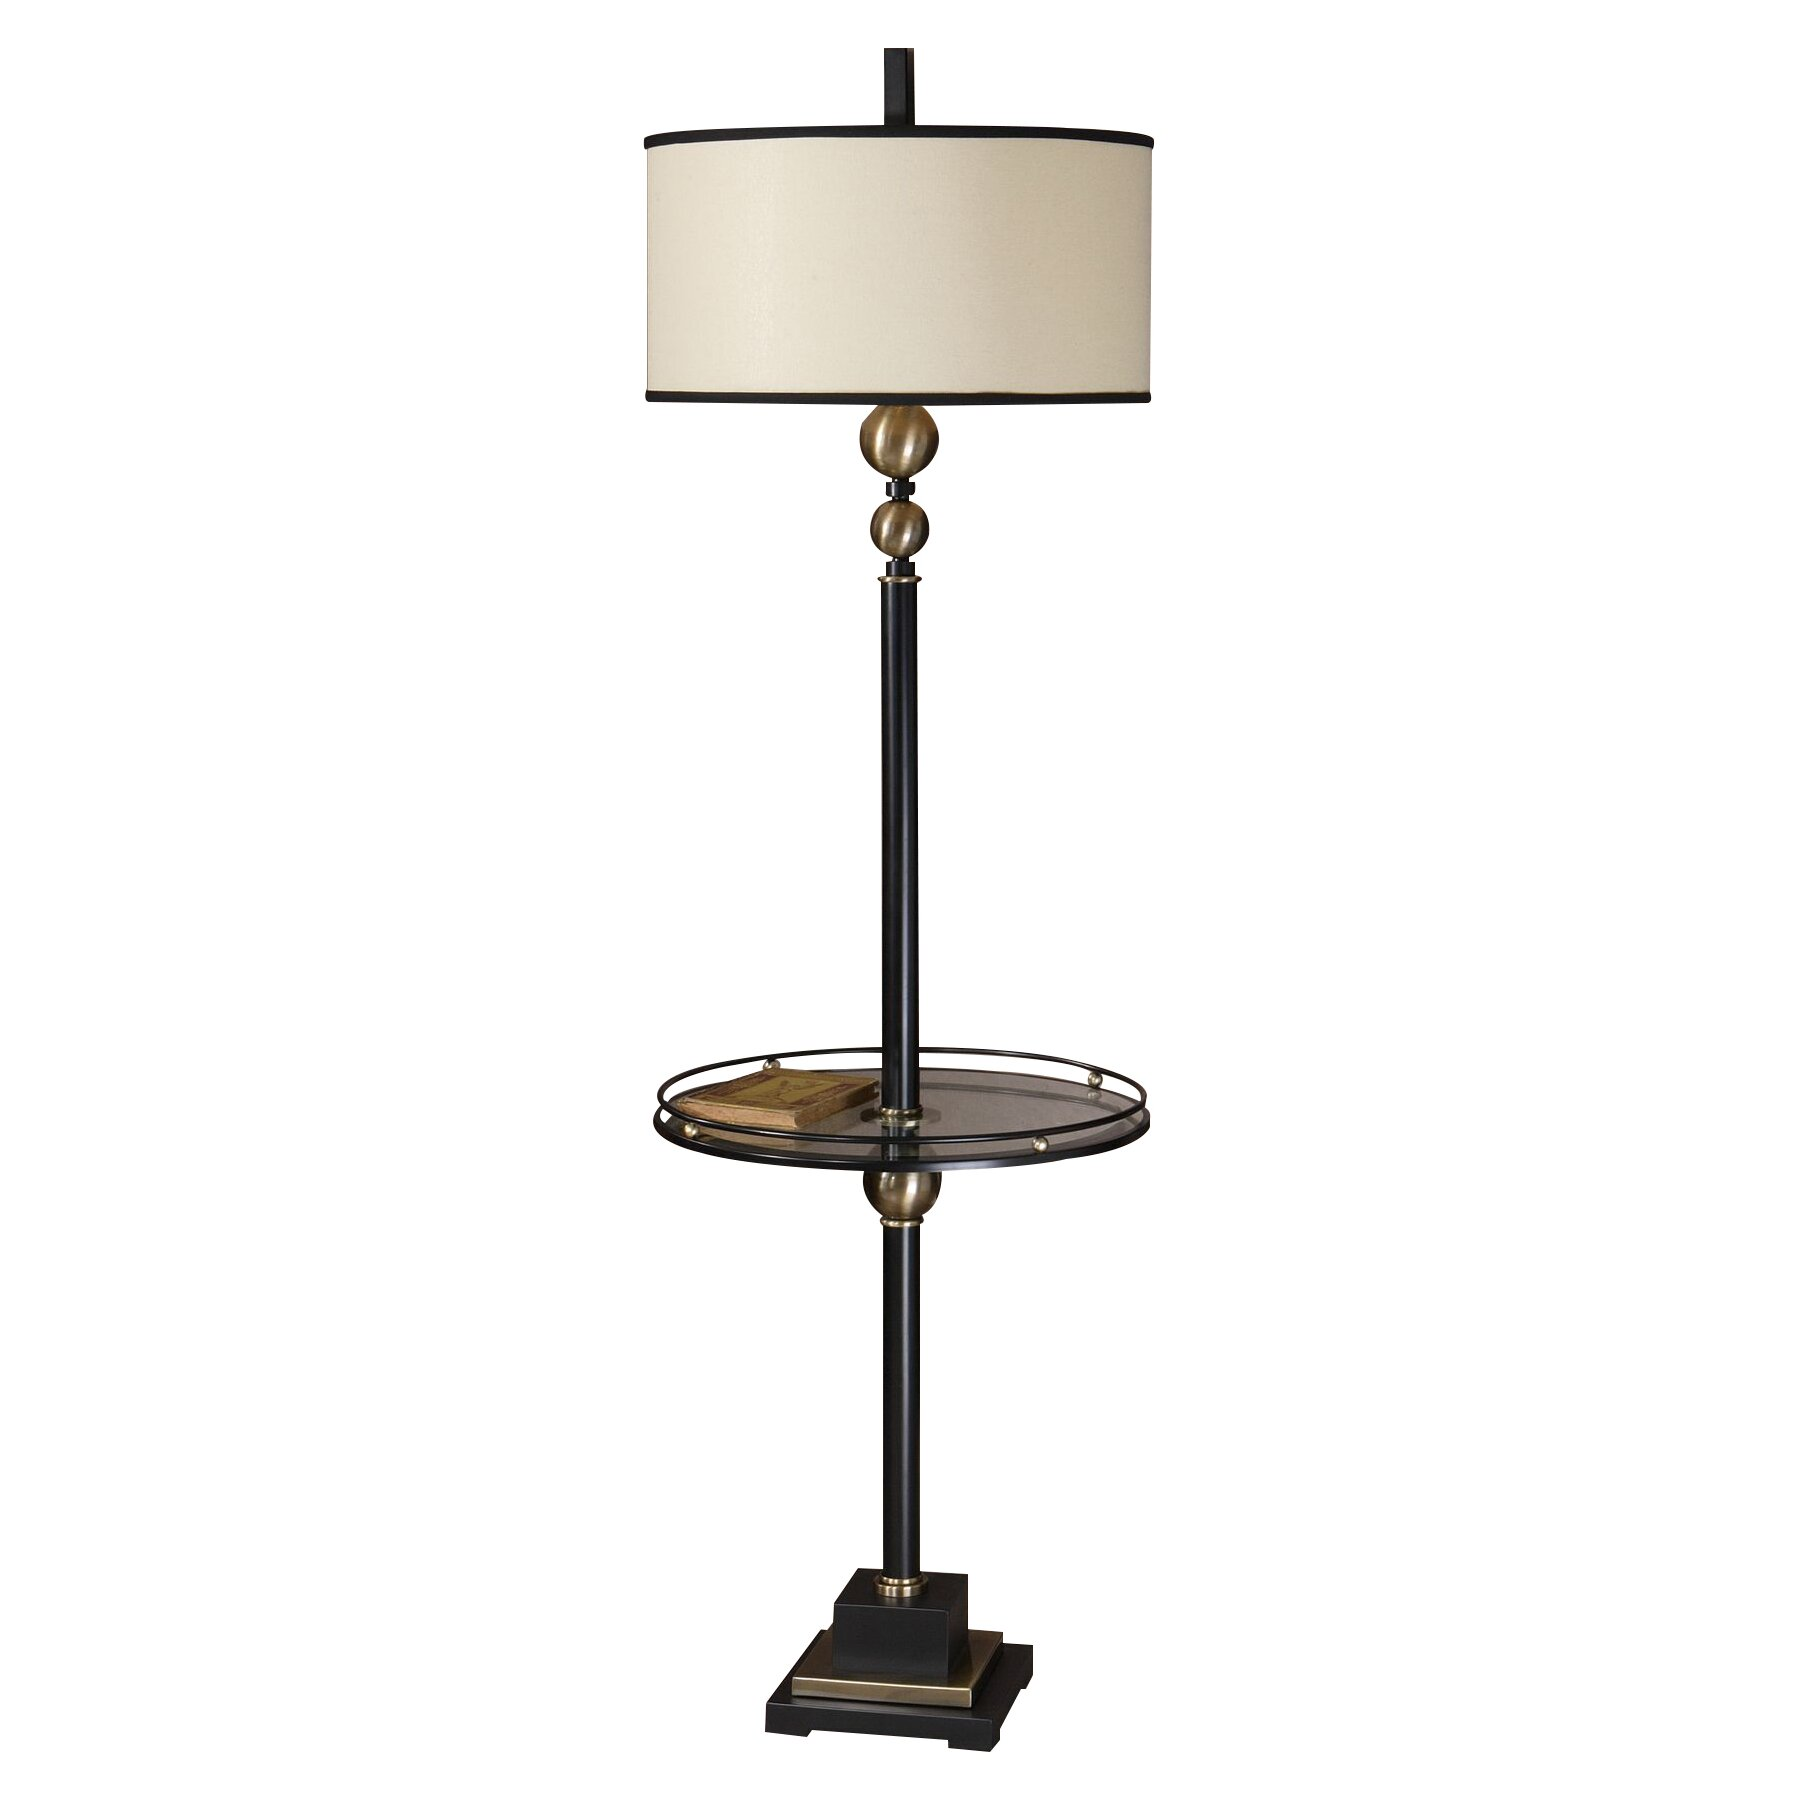 Uttermost revolution 66 floor lamp reviews wayfair for Floor lamp with table